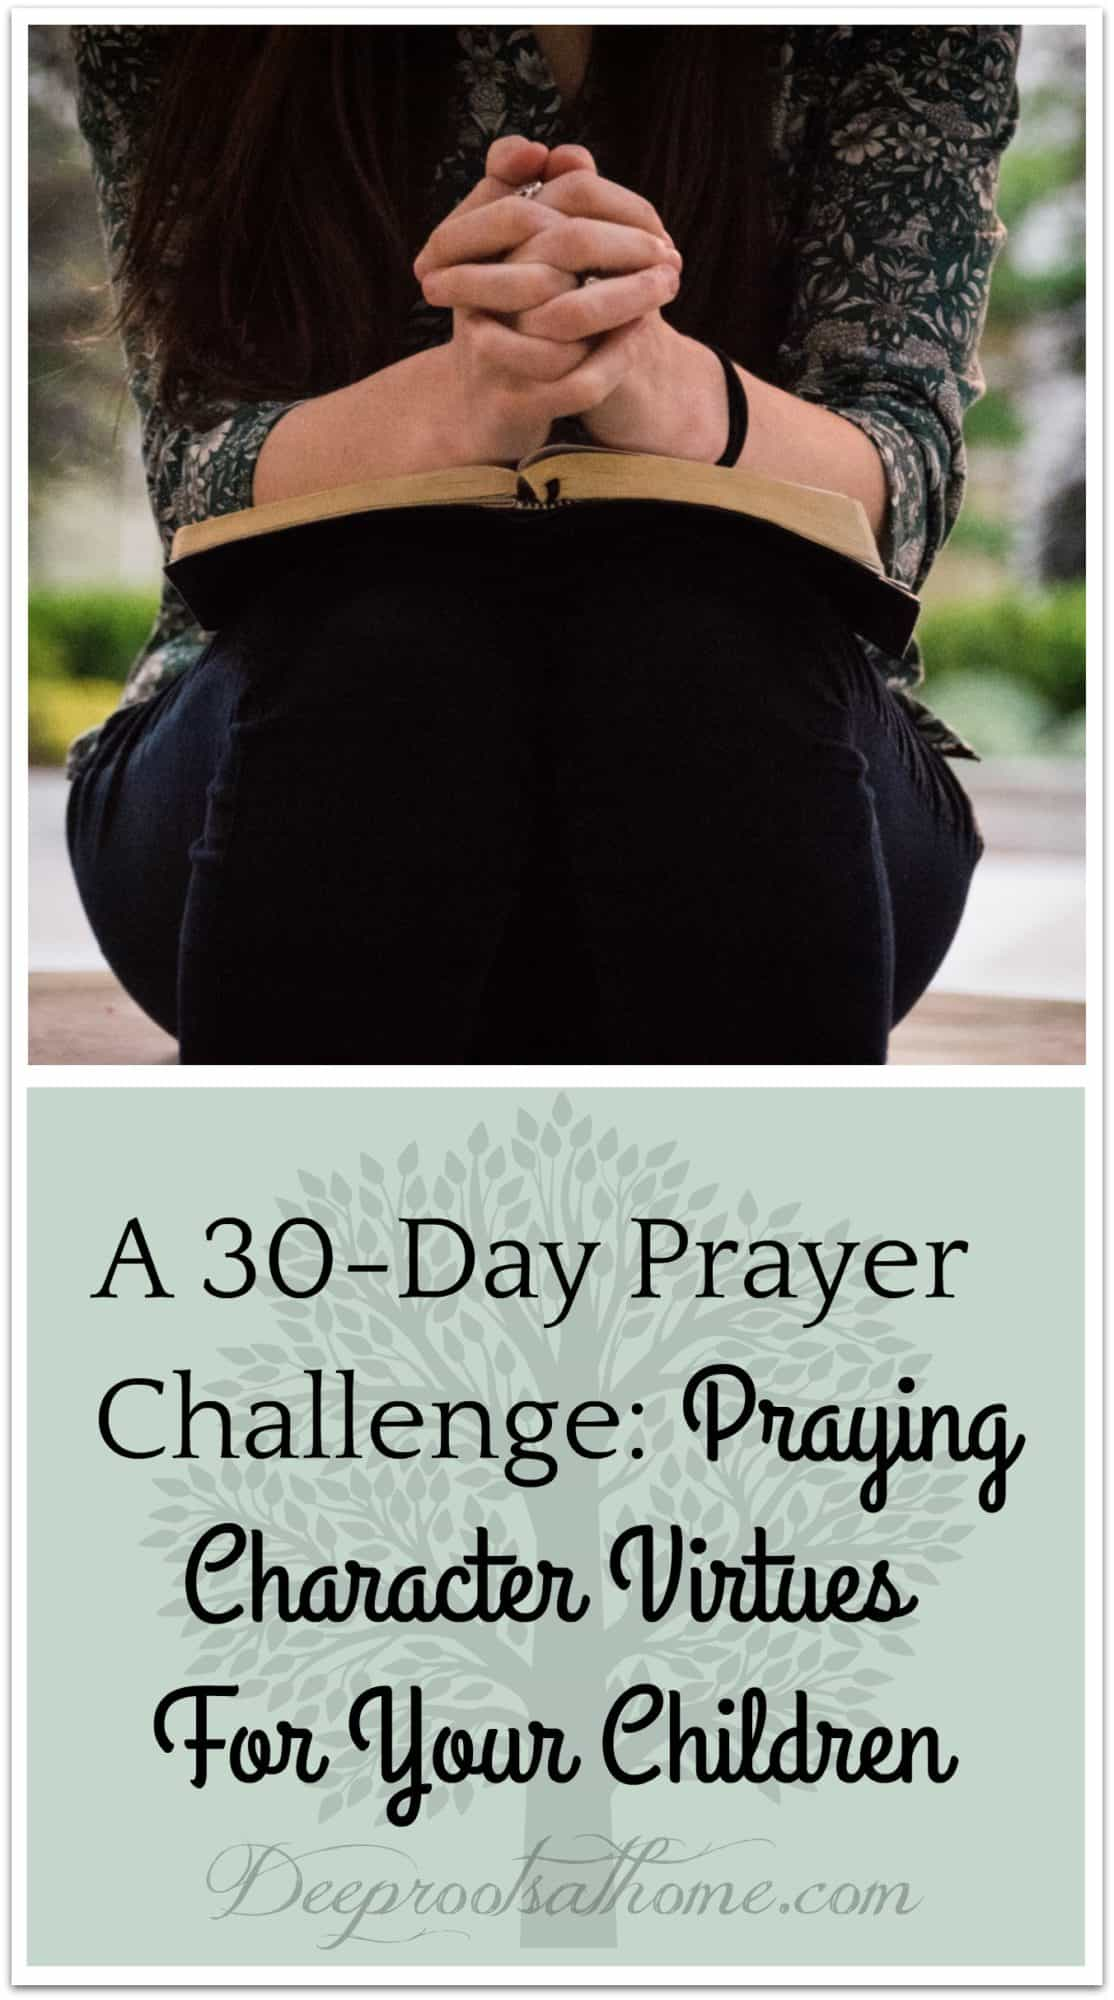 A 30-Day Prayer Challenge: Praying Character Virtues For Your Children. A 30-Day Prayer Challenge: Praying Character Virtues For Your Children. Image of a praying woman with Bible in her lap.